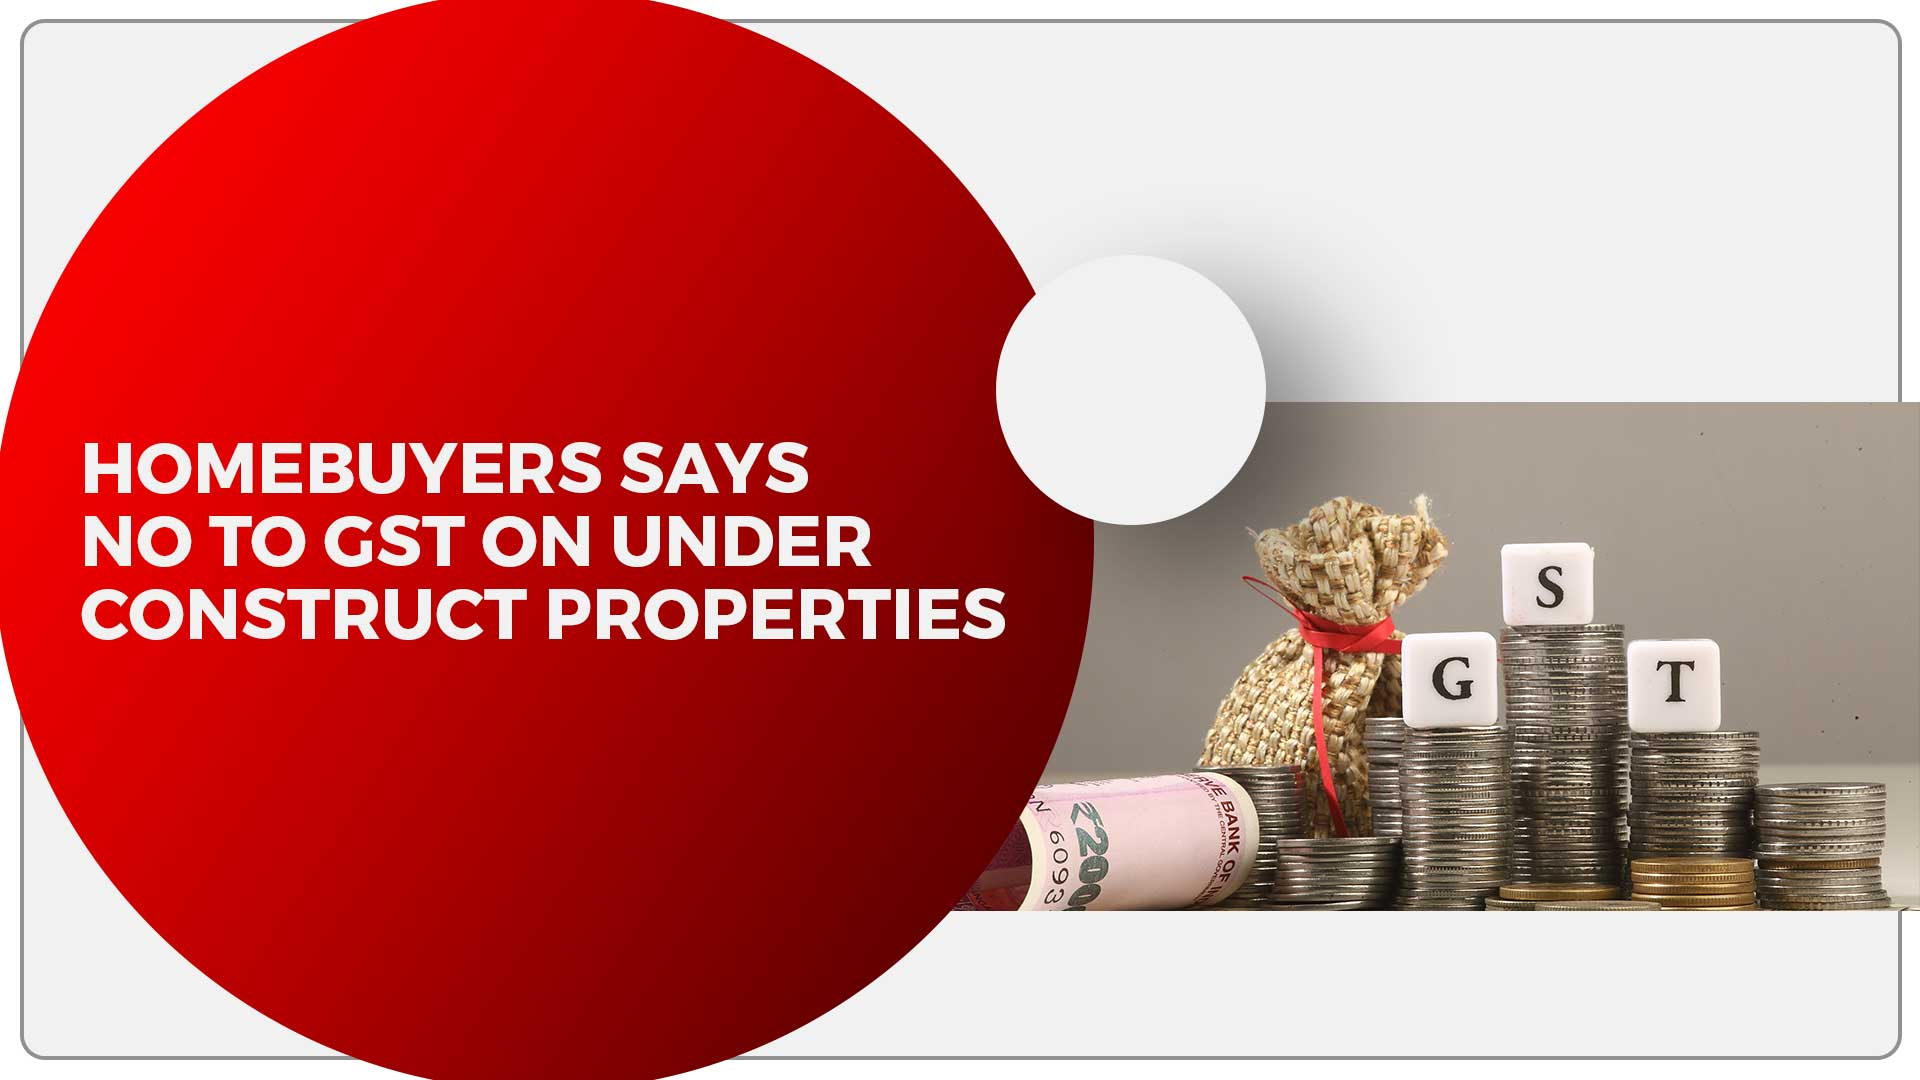 Homebuyers Want Government To Eradicate GST